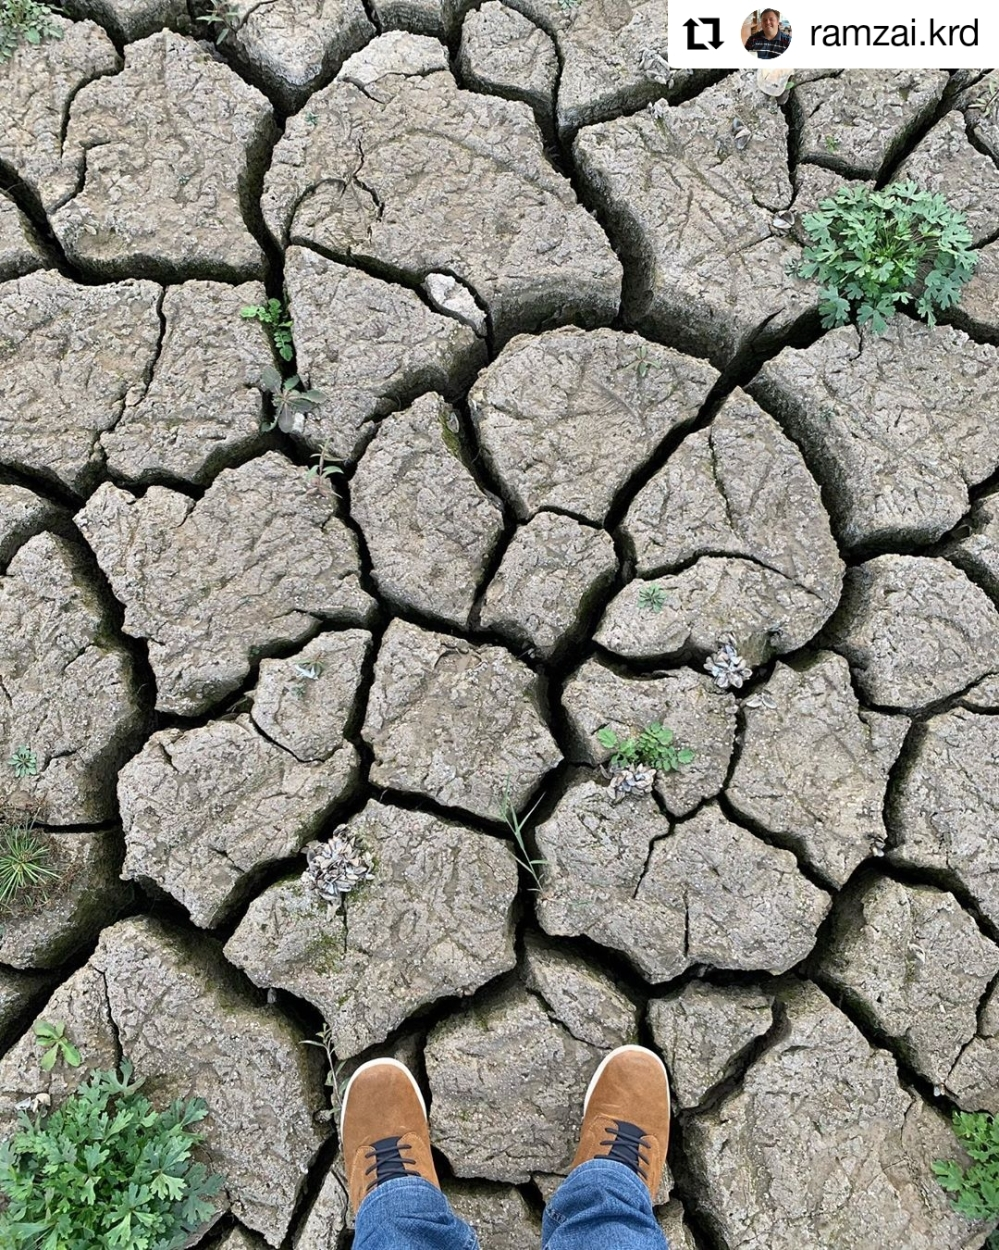 dried out earth with a pair of feet standing on it